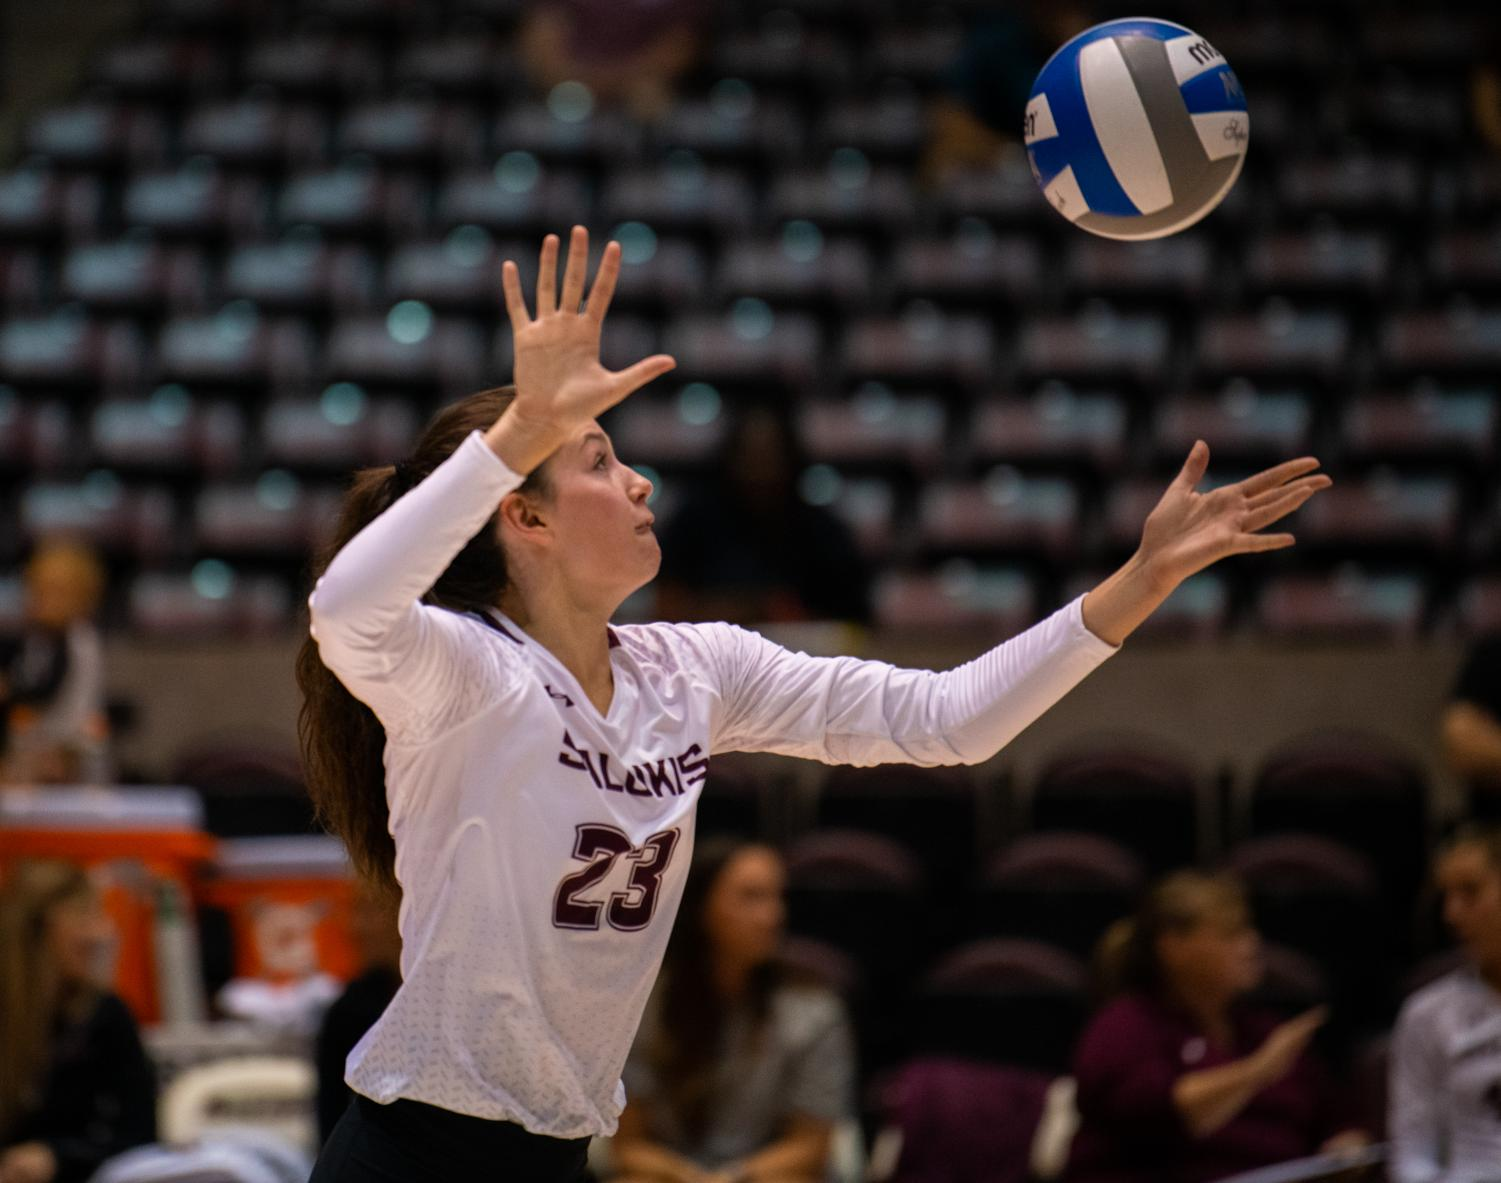 Sophomore+outside+hitter+Katy+Kluge+serves+the+ball+on+Saturday%2C+Sept.+7%2C+2019+during+the+Salukis%E2%80%99+3-1+win+against+the+Southeastern+Louisiana+University+Lions+at+the+Banterra+Center.+